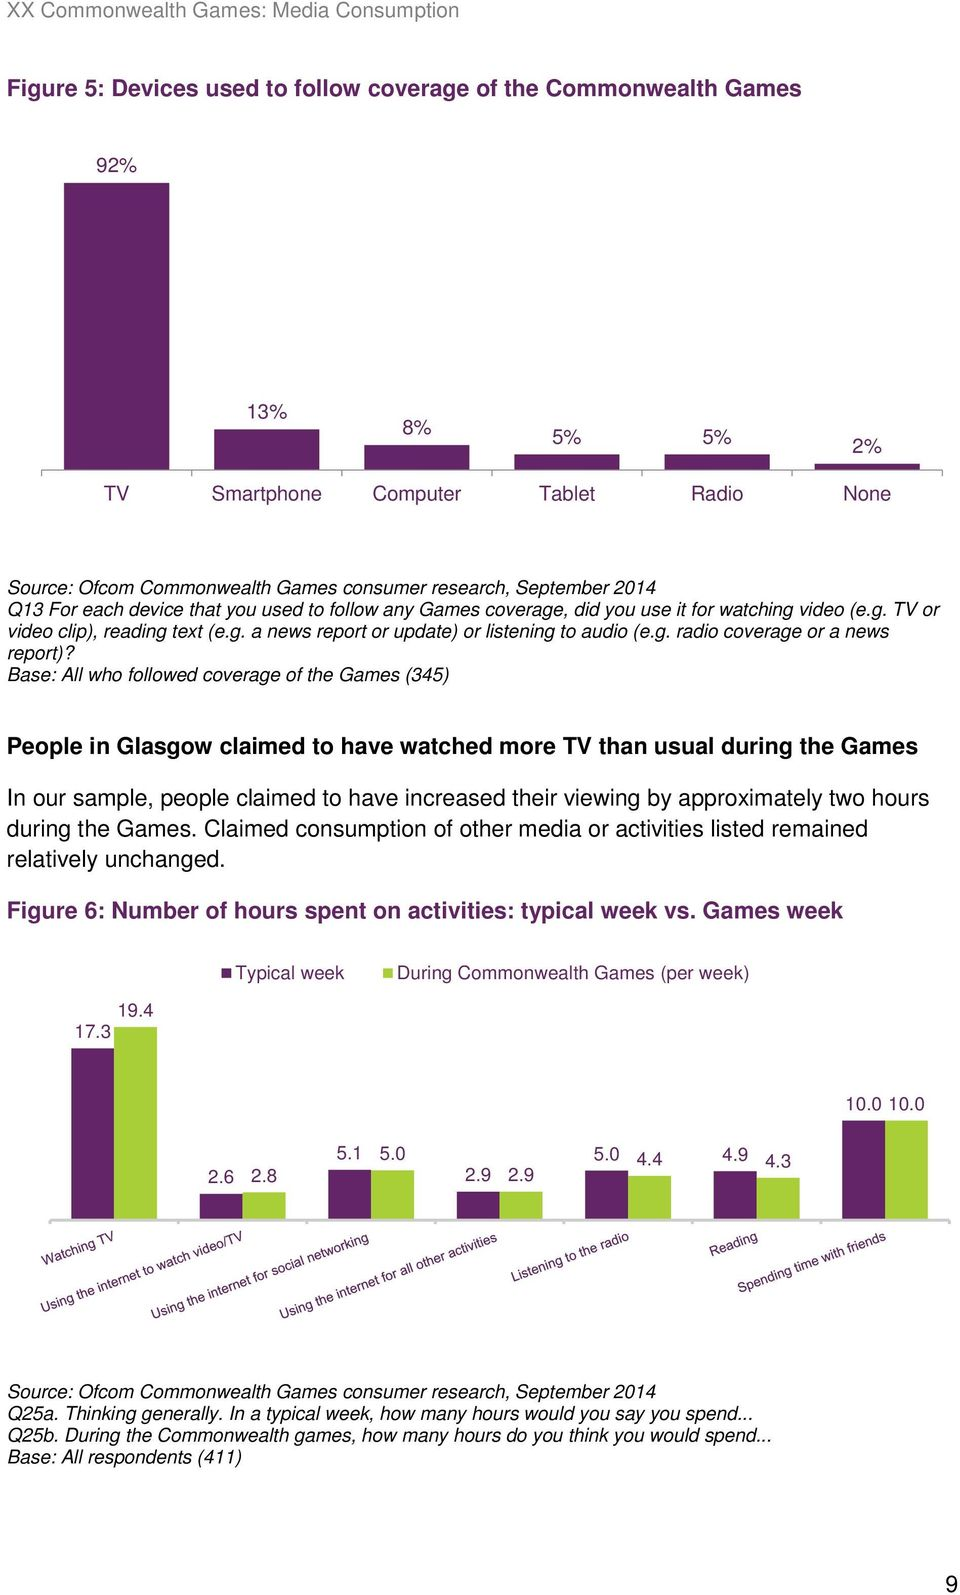 Base: All who followed coverage of the Games (345) People in Glasgow claimed to have watched more TV than usual during the Games In our sample, people claimed to have increased their viewing by